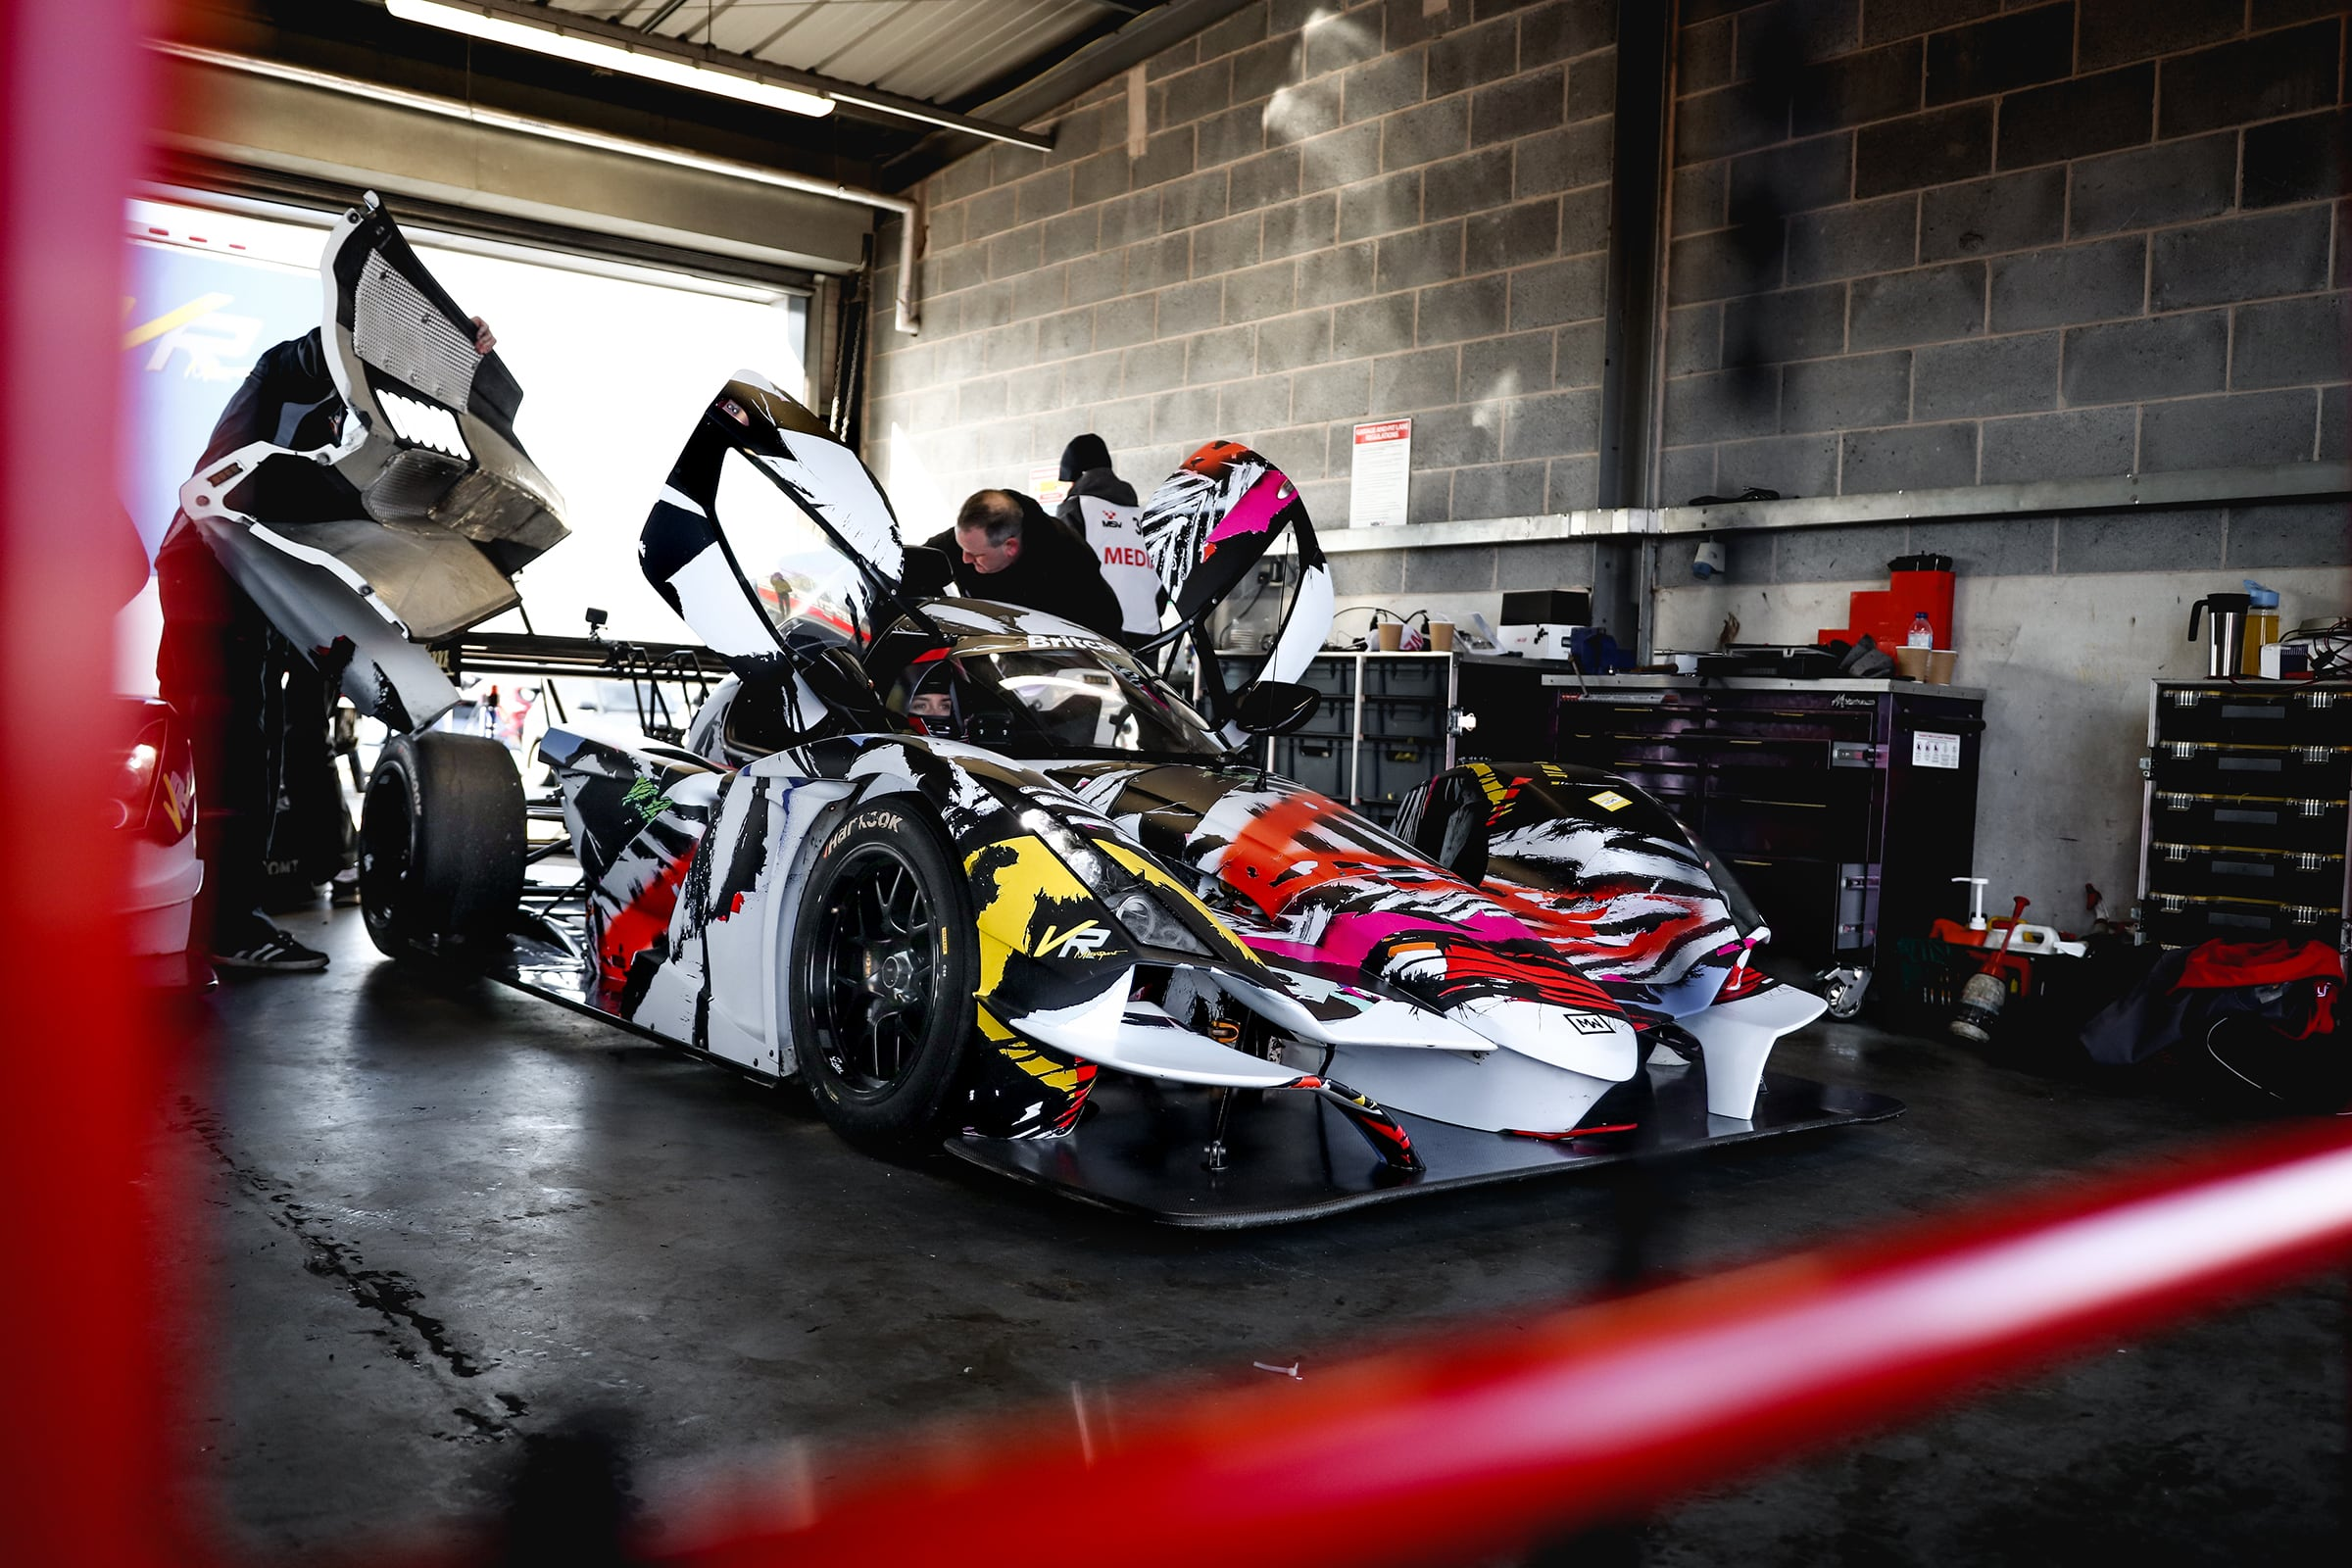 Praga Cars and VR Motorsport reveal new three-car 2020 Britcar line-up